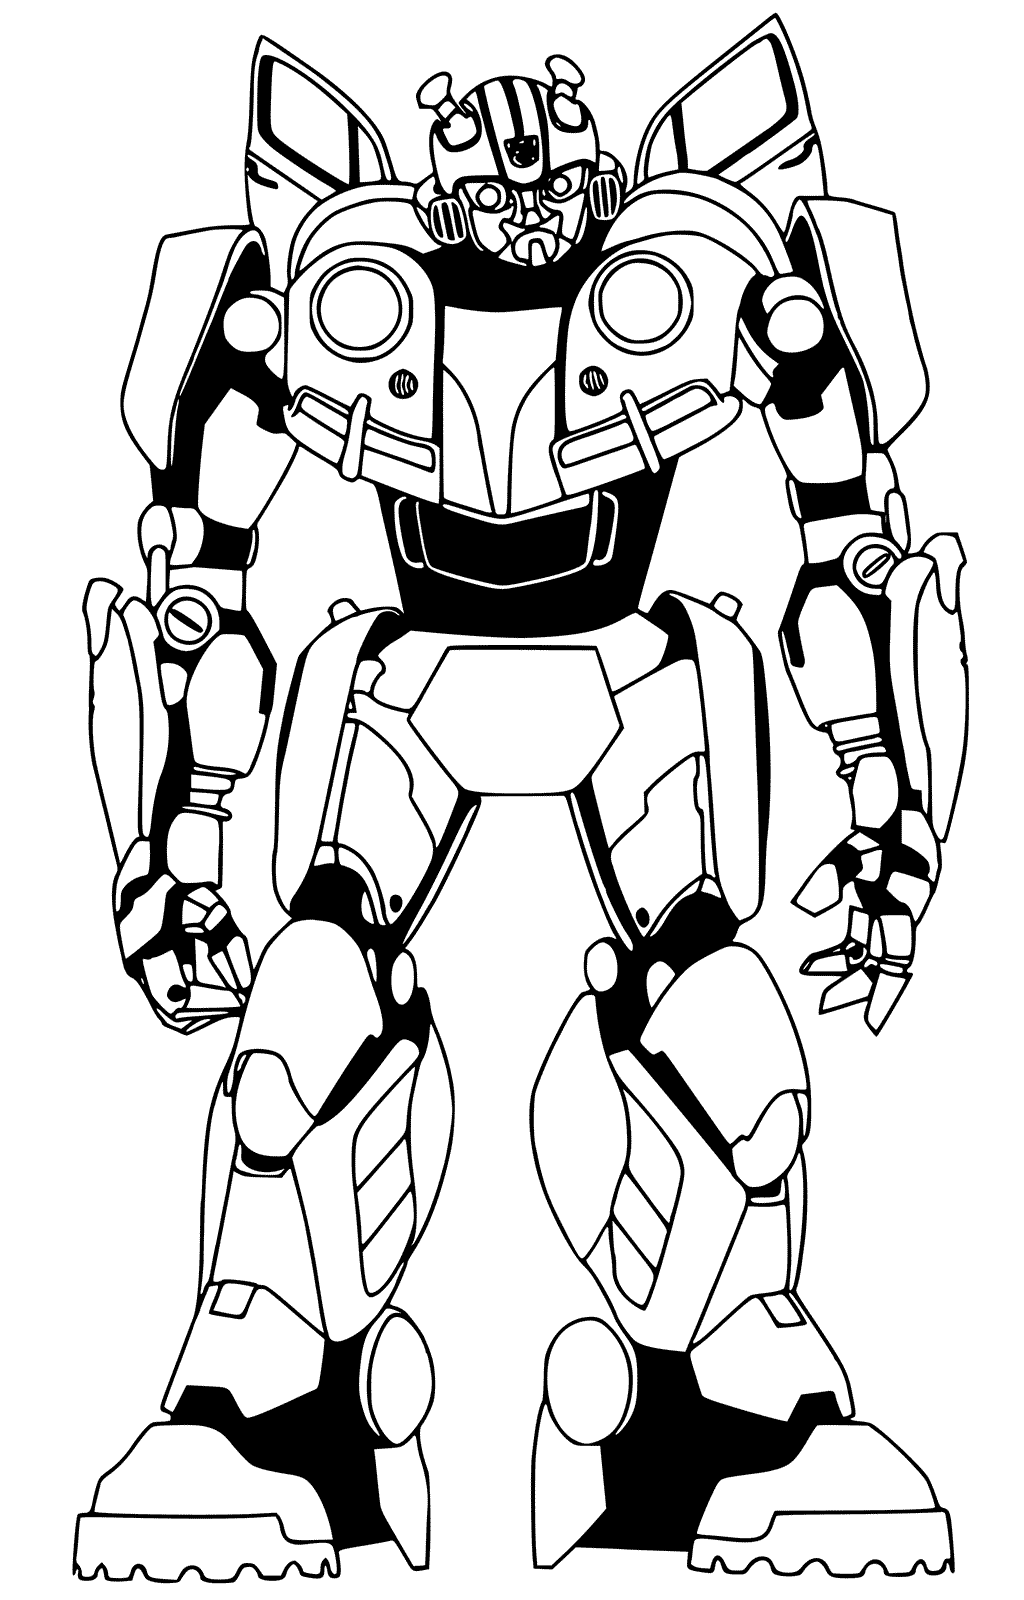 for coloring 40 free printable coloring pages for kids for coloring